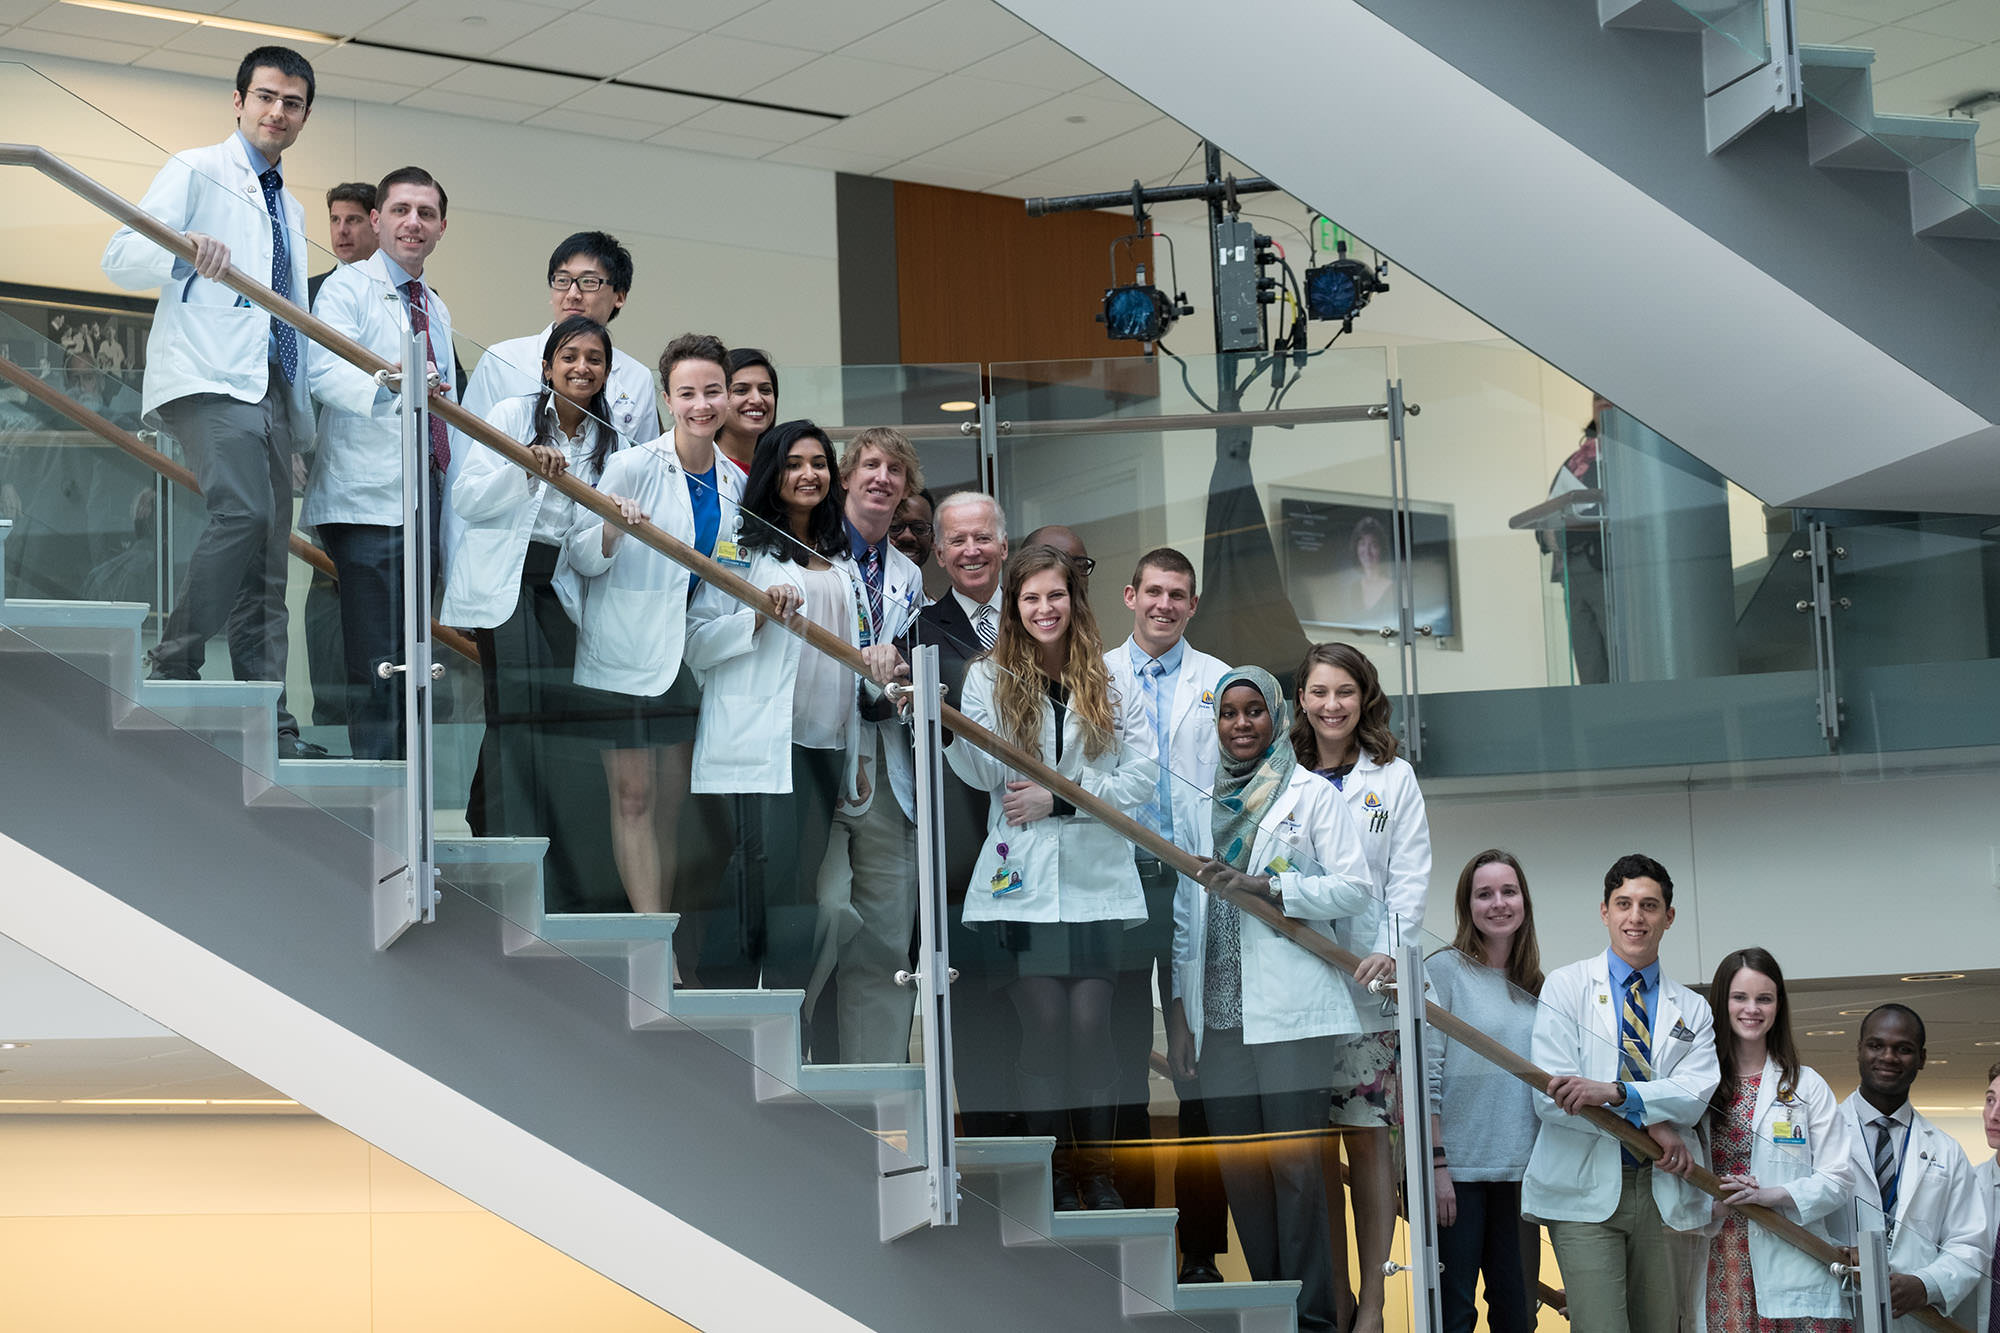 Vice President Joe Biden joins medical students at Johns Hopkins at the announcement of the establishment of the Bloomberg~Kimmel Institute for Cancer Immunotherapy